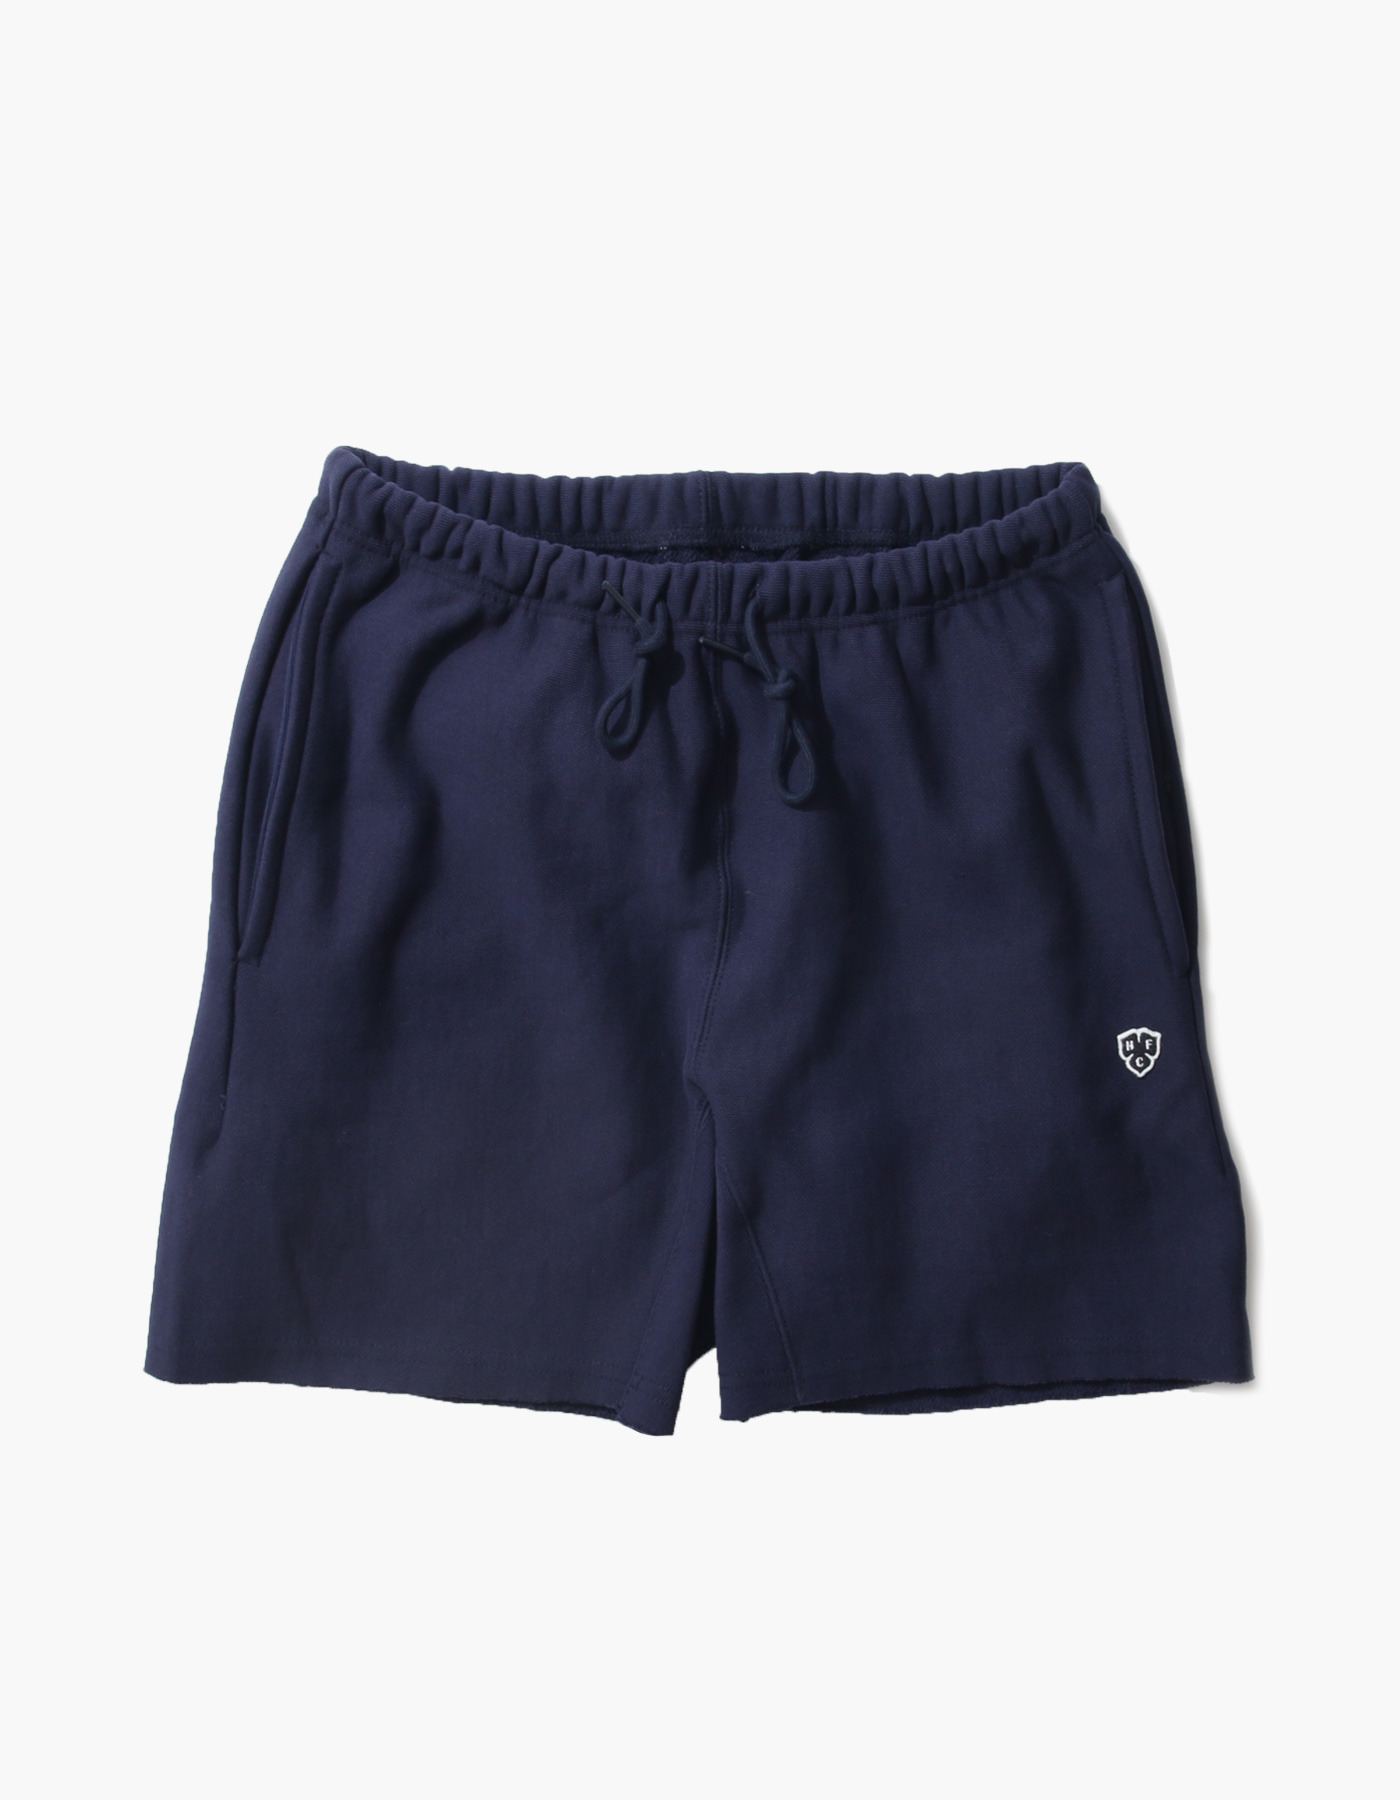 321 GYM SHORTS / NAVY